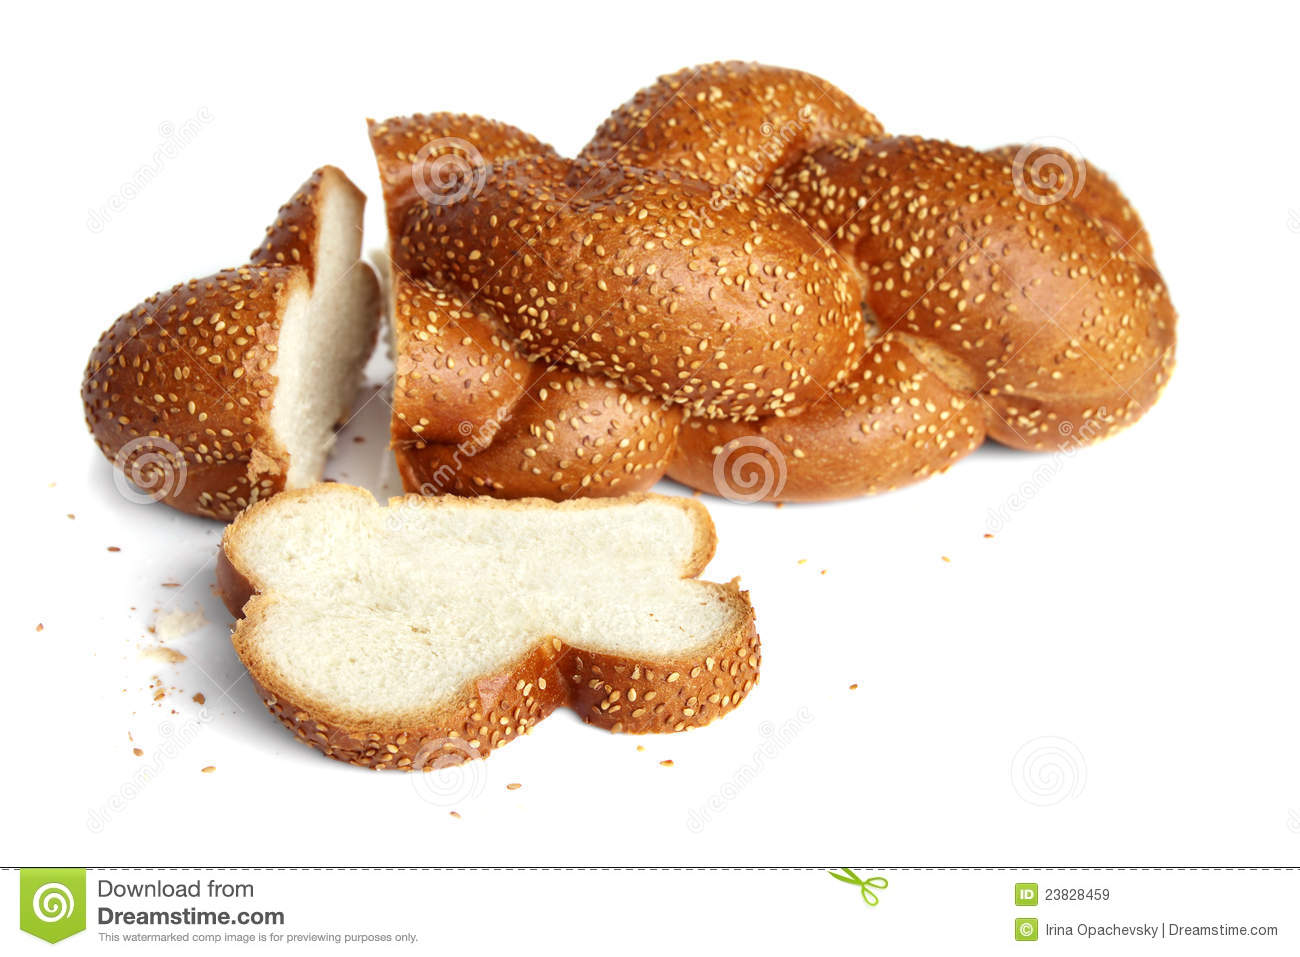 ... white bread, sprinkled with sesame seeds, isolated on white